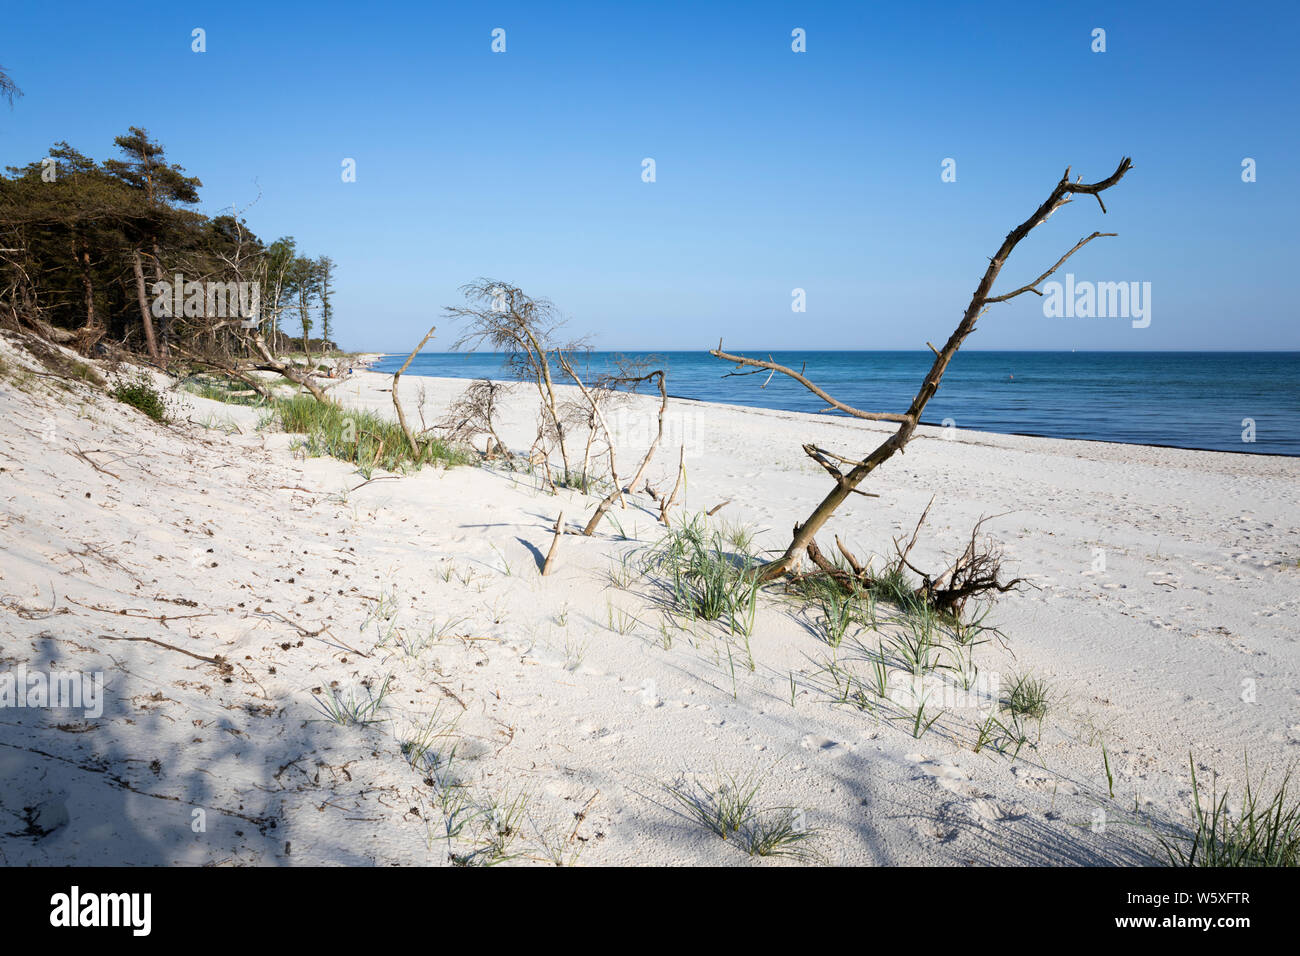 White sand beach of Dueodde on island's south coast, Dueodde, Bornholm Island, Baltic sea, Denmark, Europe Stock Photo